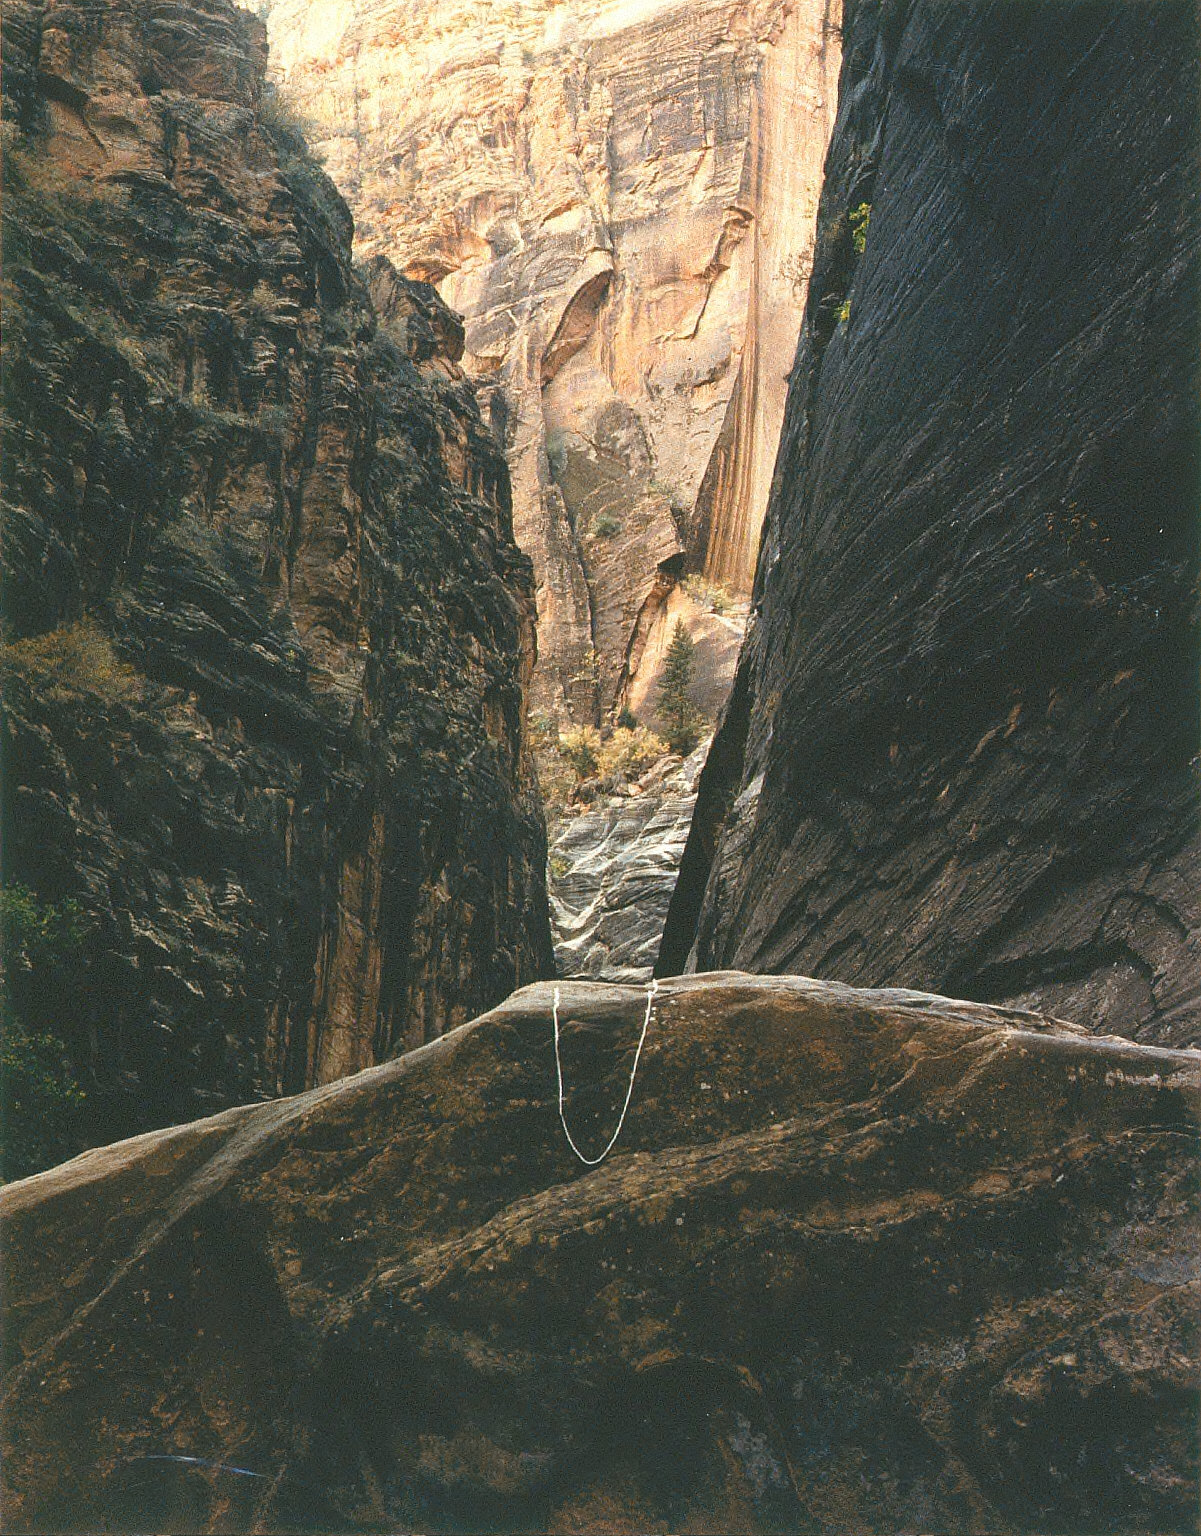 Canyon Point, Zion National Park, Utah